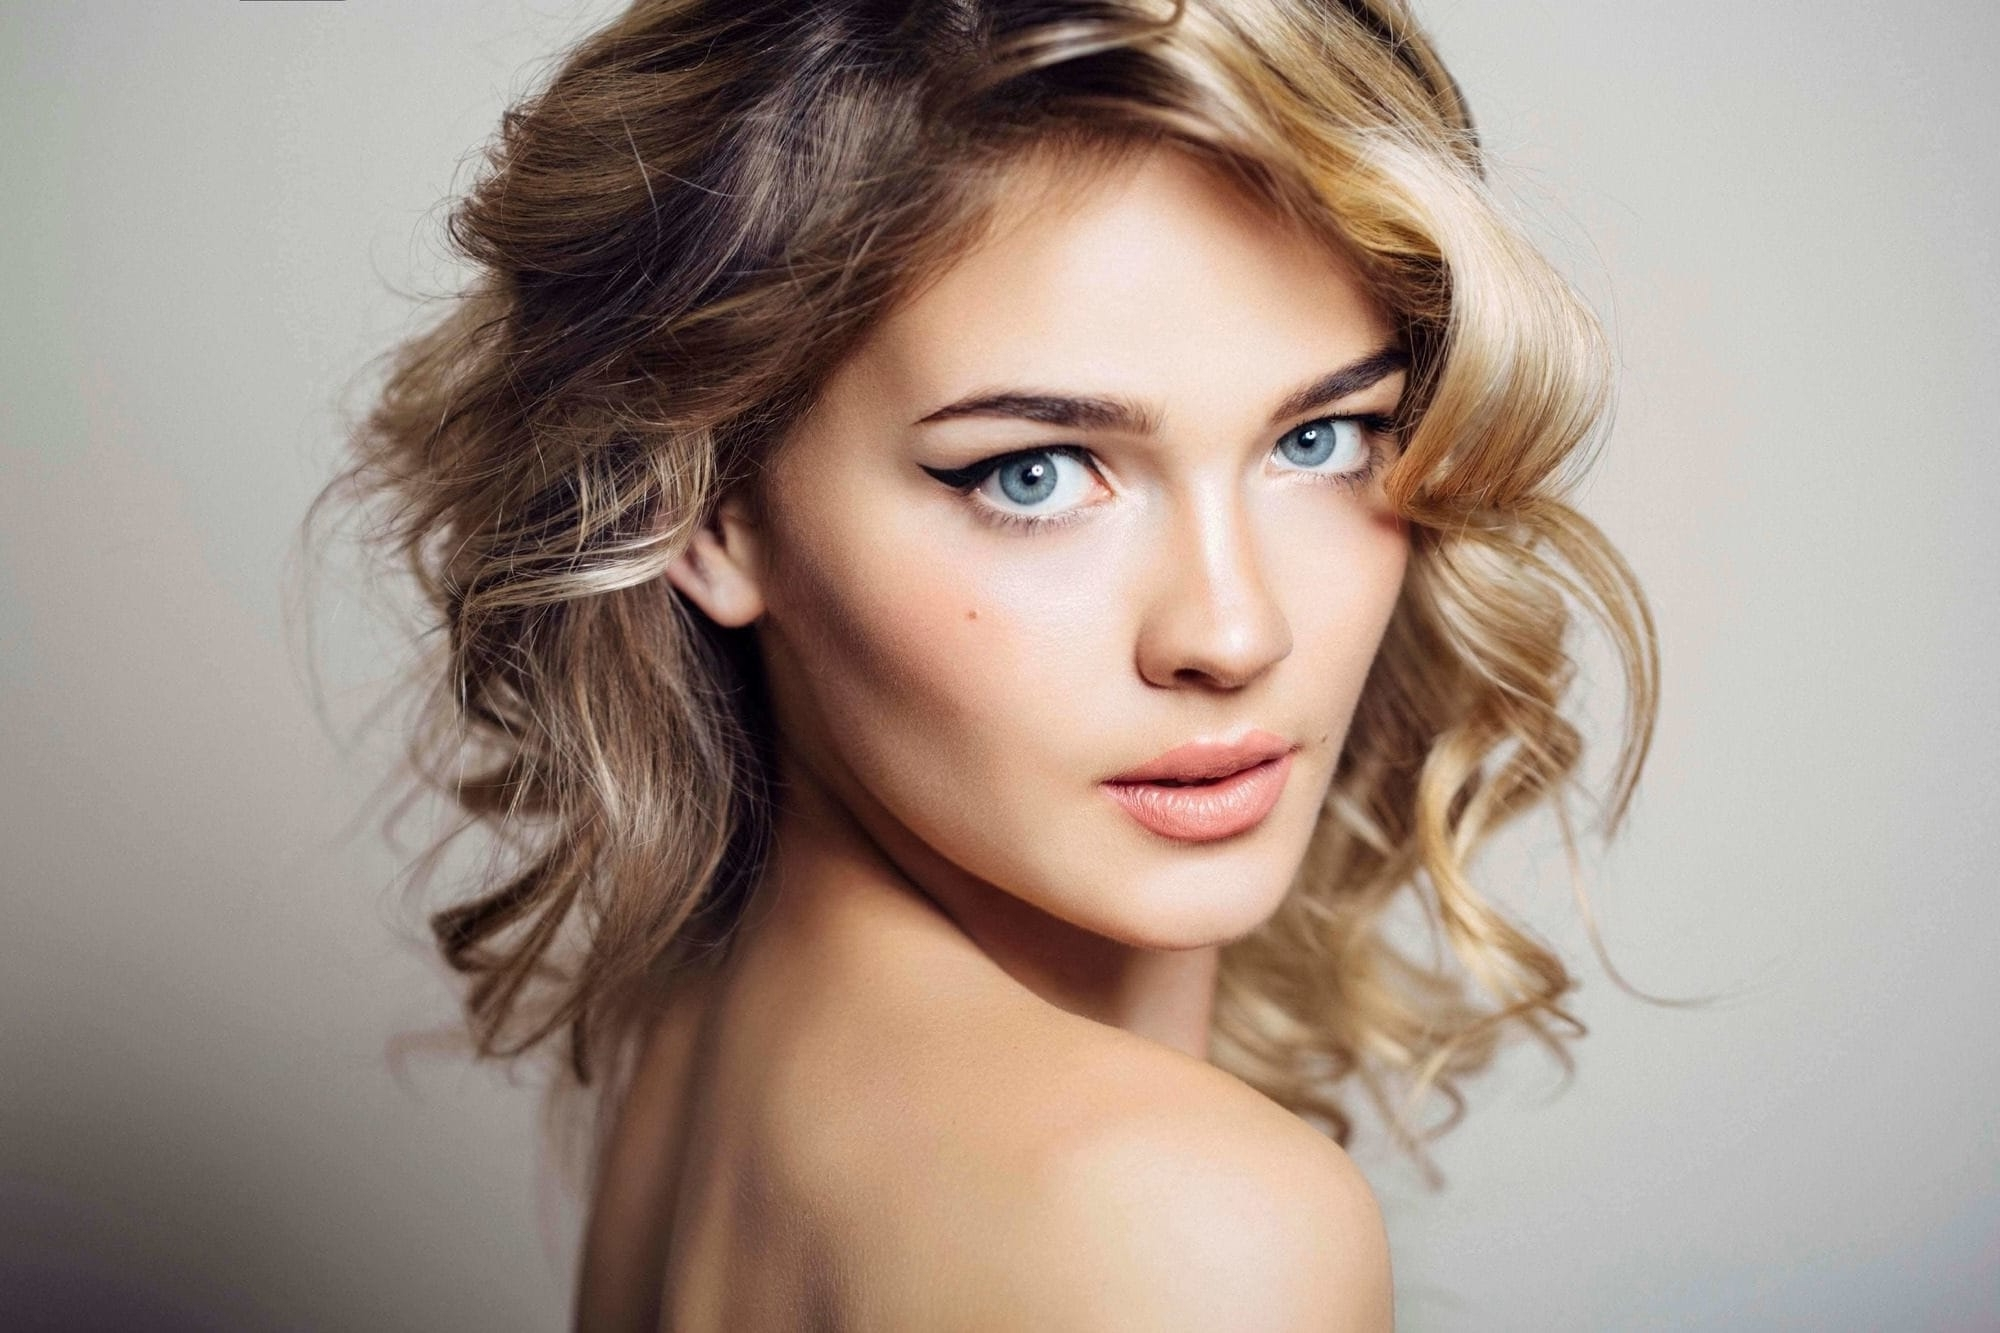 Blonde Hair With Dark Roots: Stylish Ways To Wear This Hair Trend Inside Newest Sleek Blonde Hairstyles With Grown Out Roots (View 18 of 20)